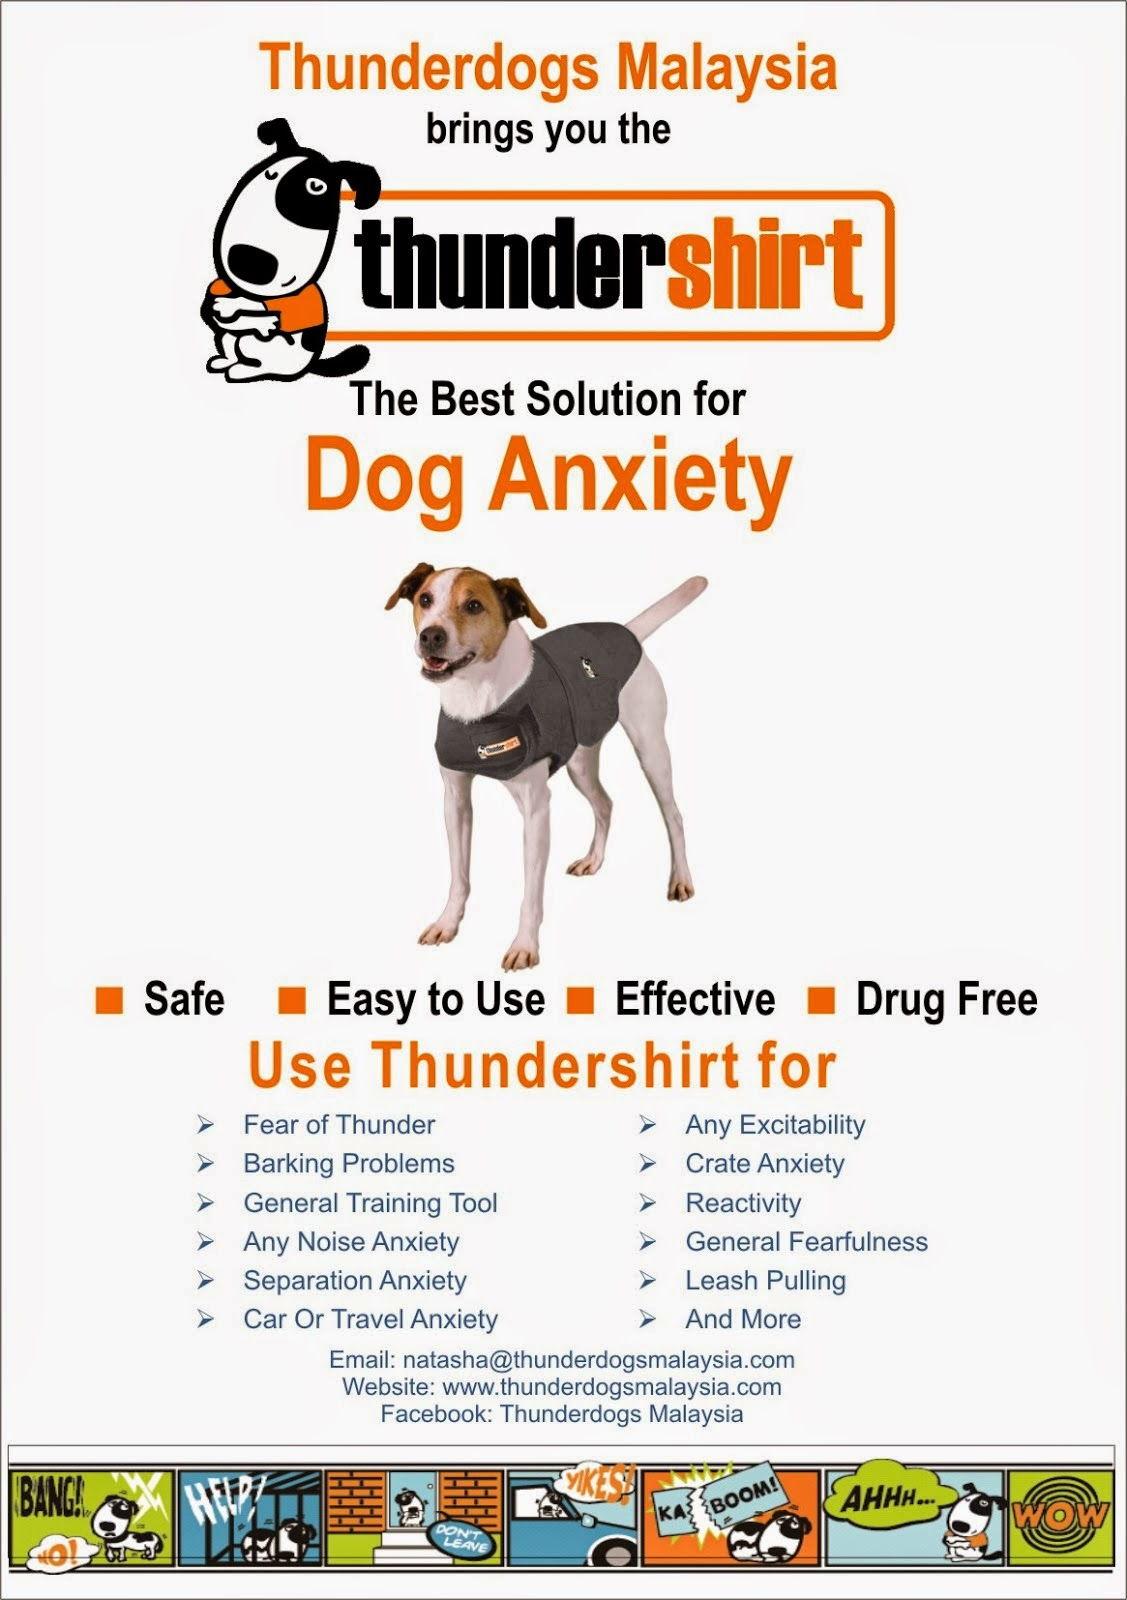 THE BEST SOLUTION FOR DOG ANXIETY